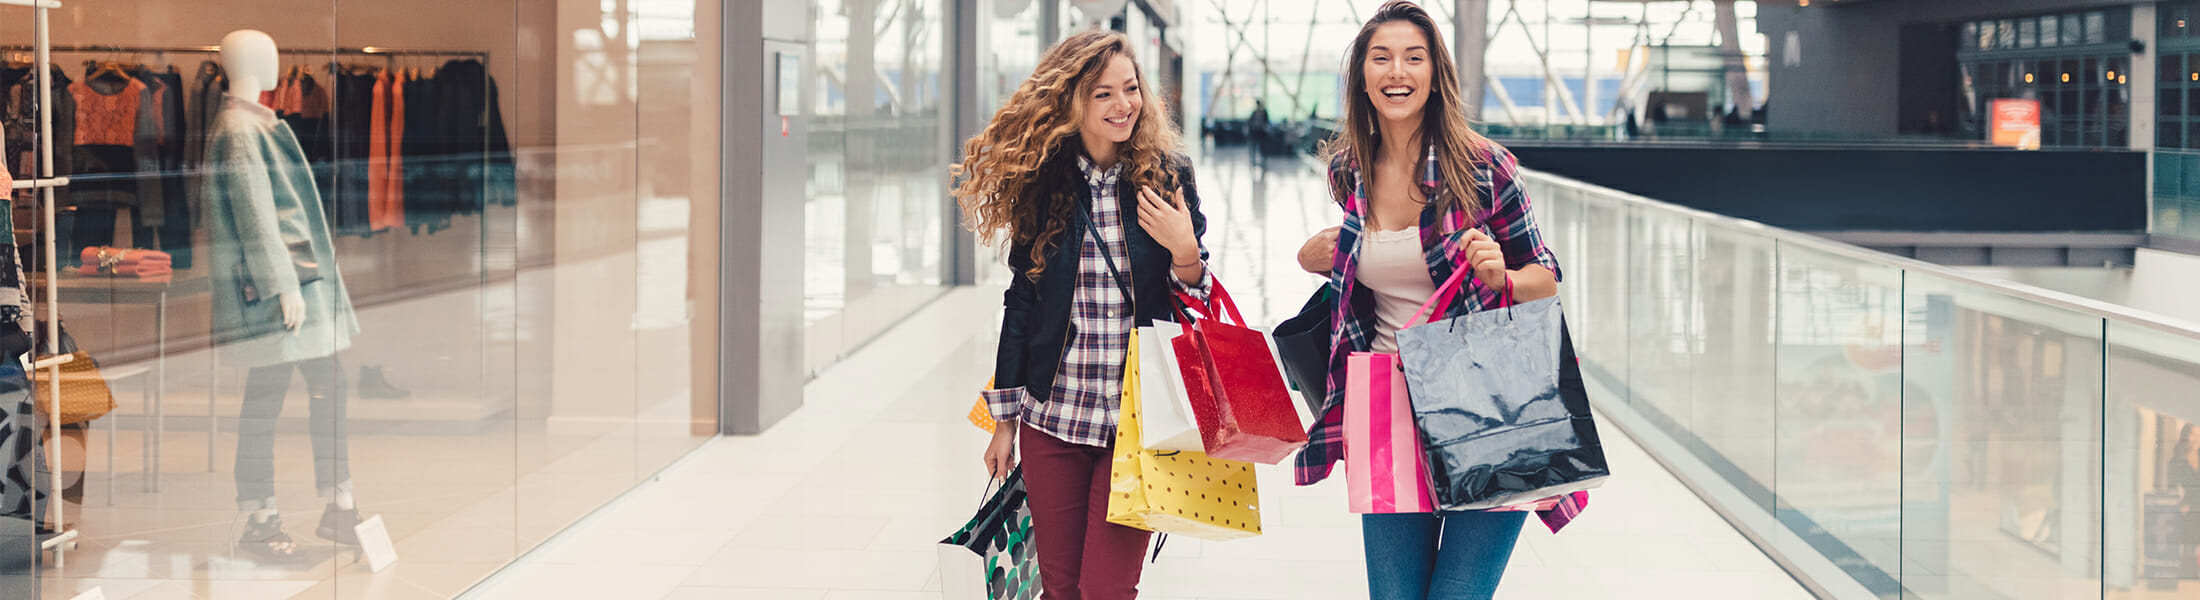 Friends enjoying a day of shopping at The Plaza